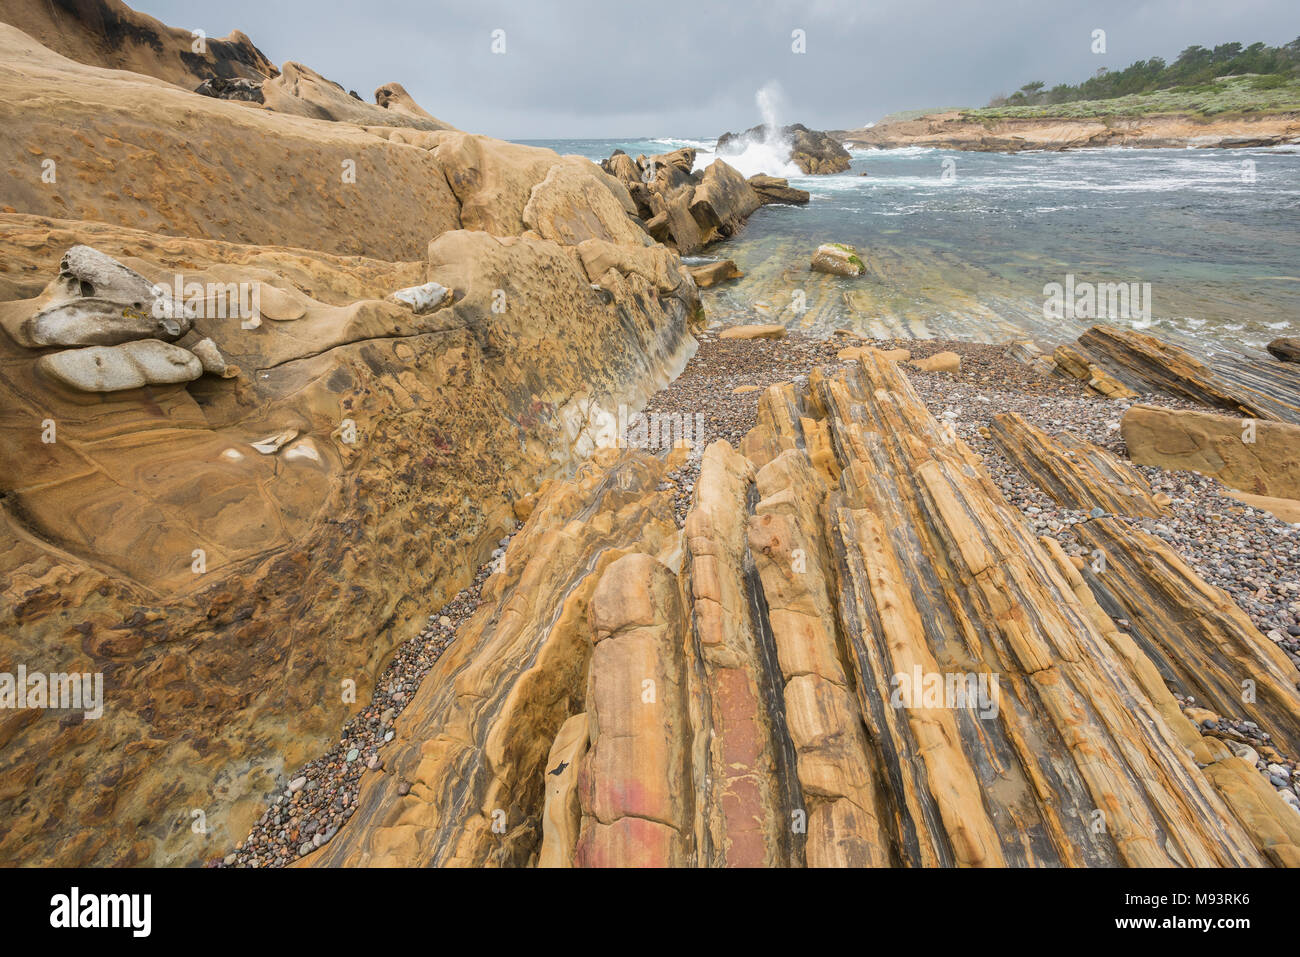 Weston beach (Carmelo formation) and eroded sedimentary rock (granodiorite), Point Lobos State Natural Reserve, CA, USA, by Dominique Braud/Dembinsky  - Stock Image